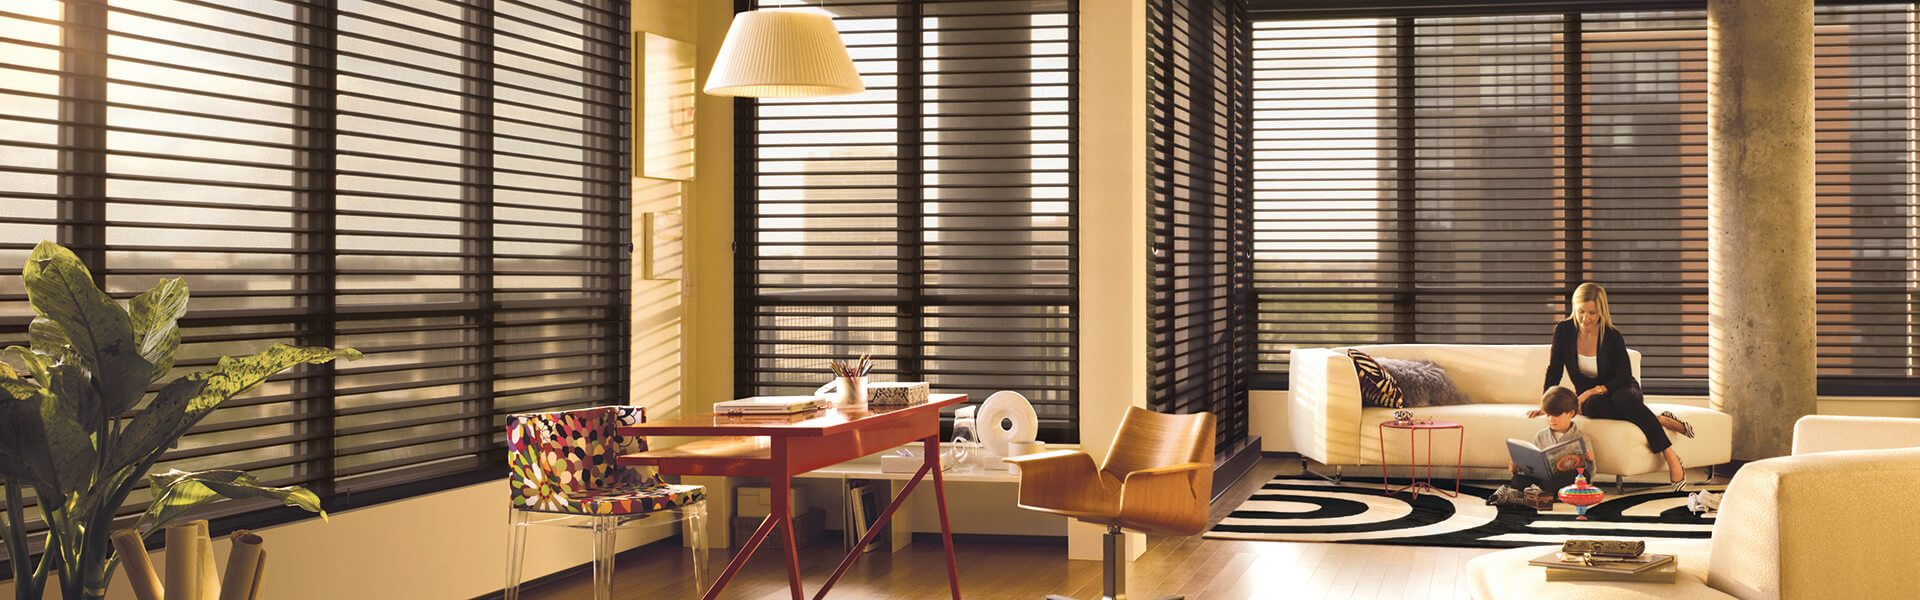 Shades by design custom window treatments miami blinds shades for Hunter douglas exterior sun shades